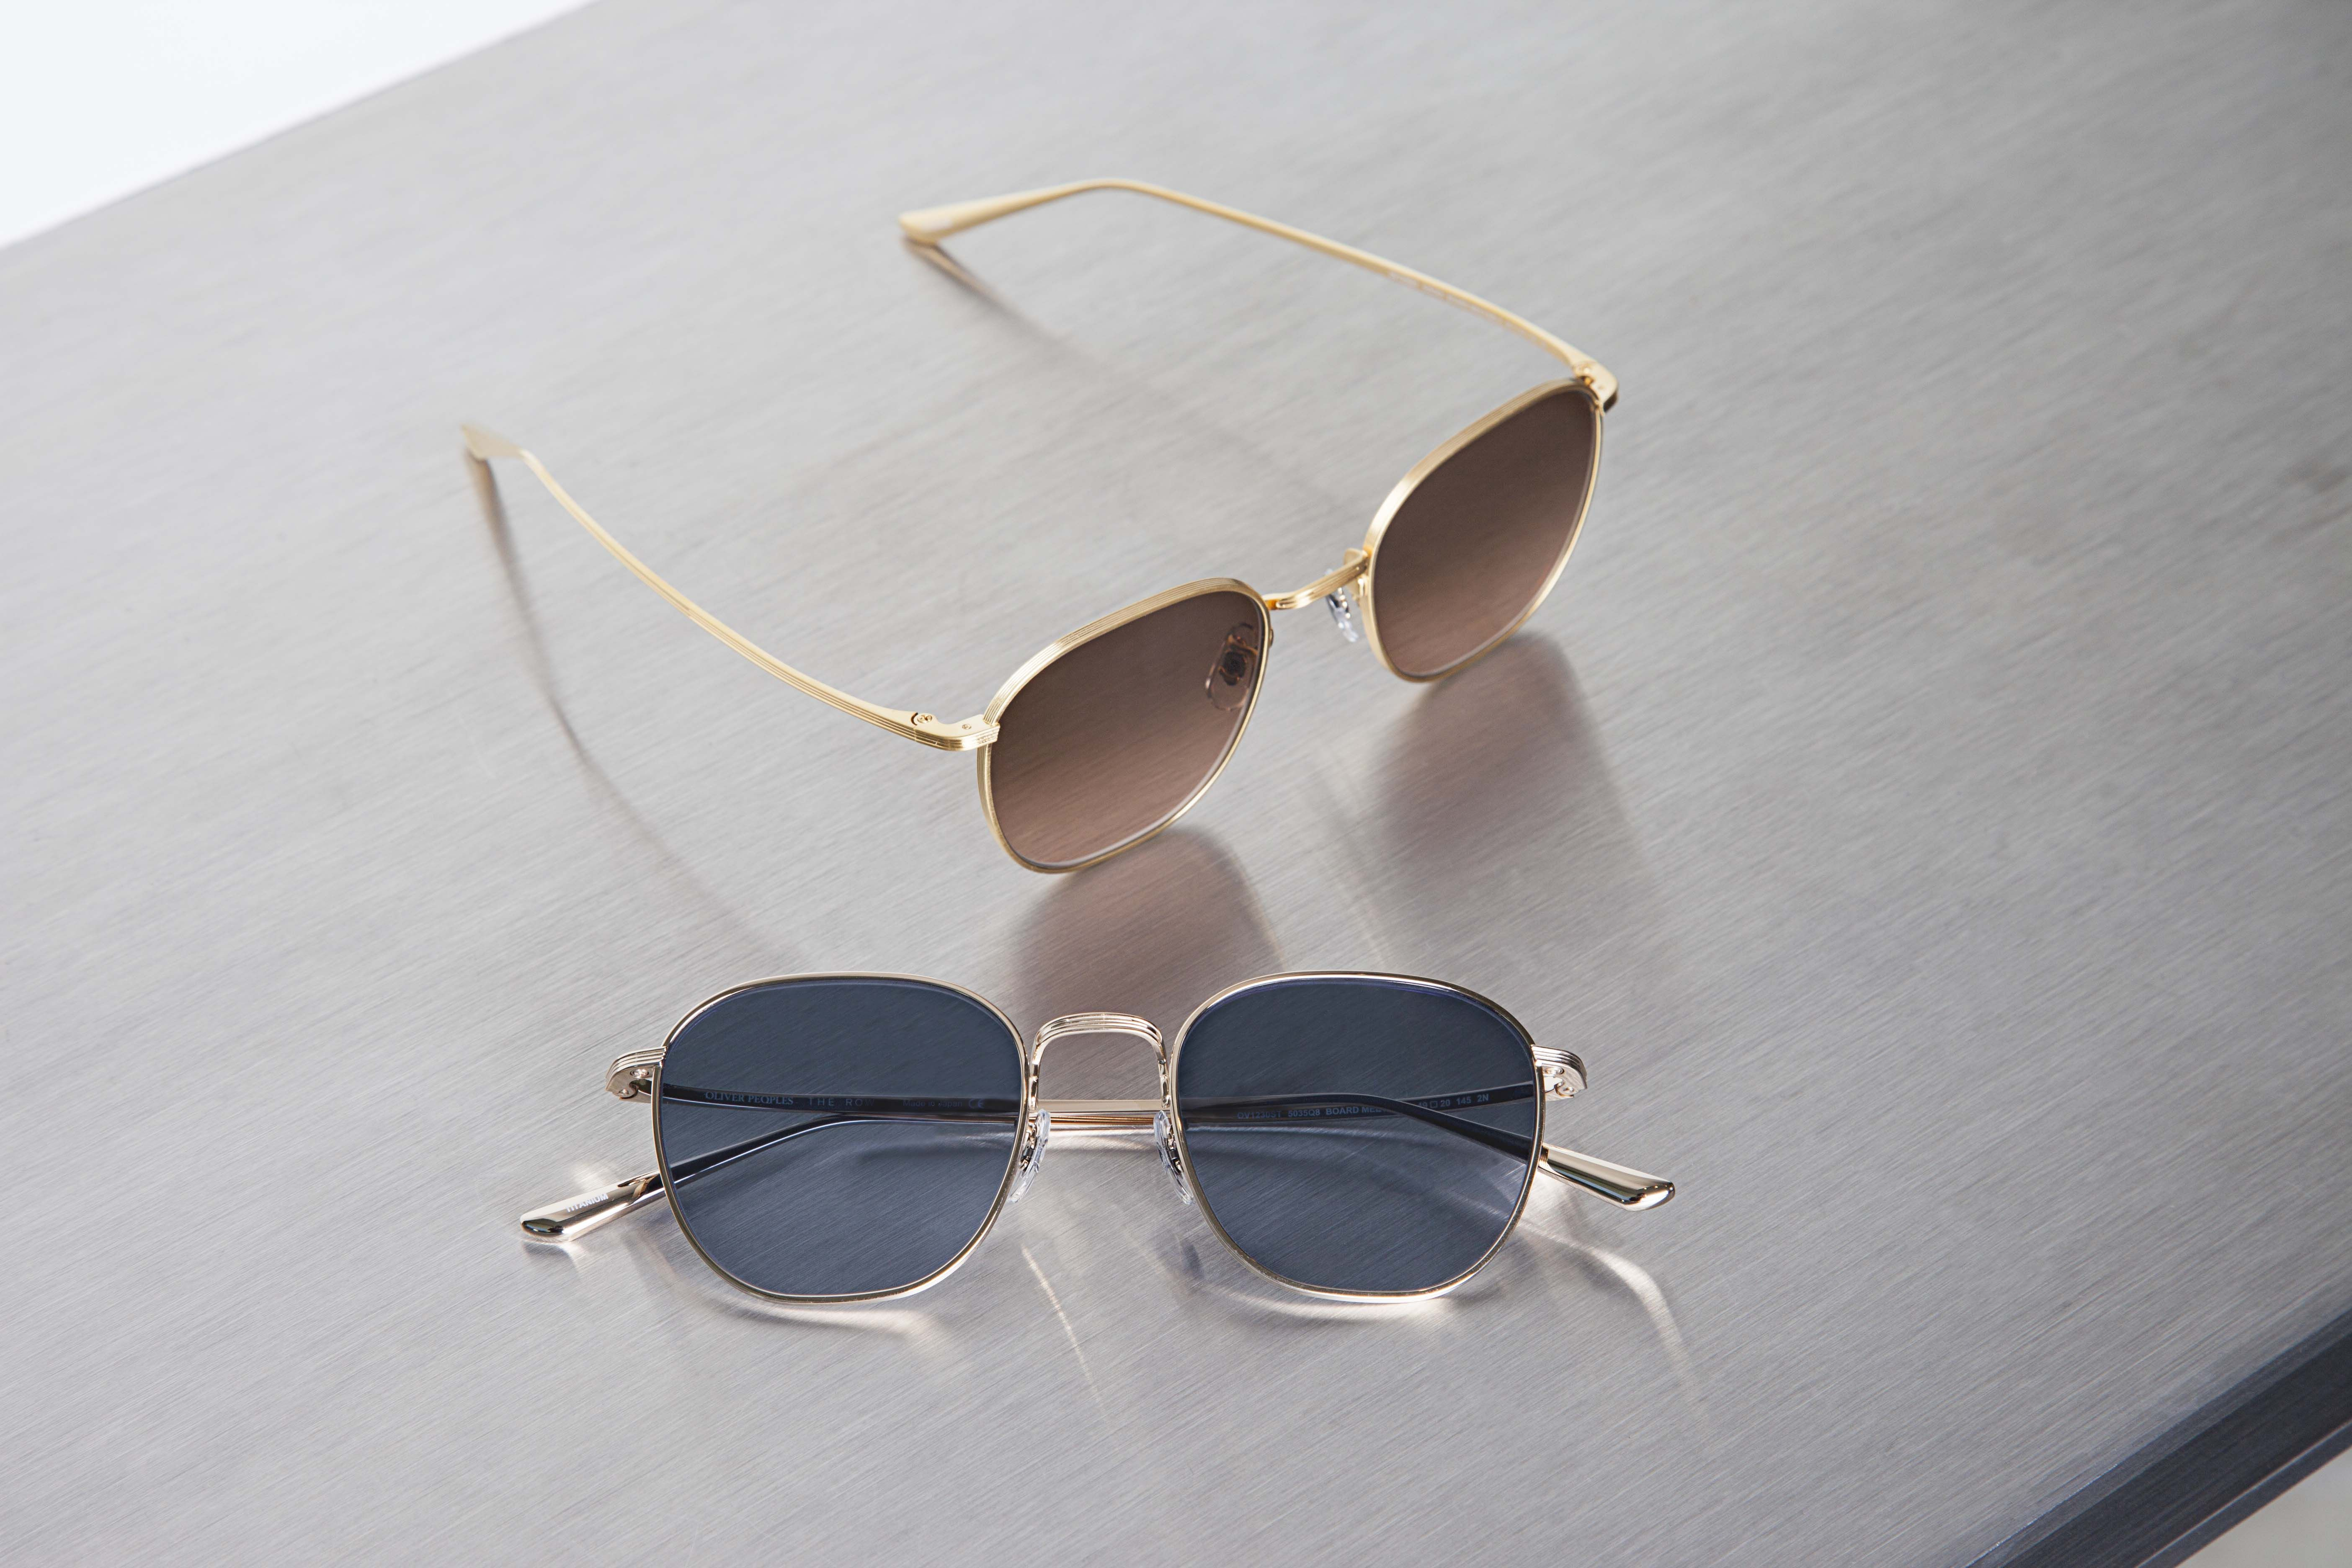 027b041262f Oliver Peoples x The Row Collaboration - Oliver Peoples x The Row ...